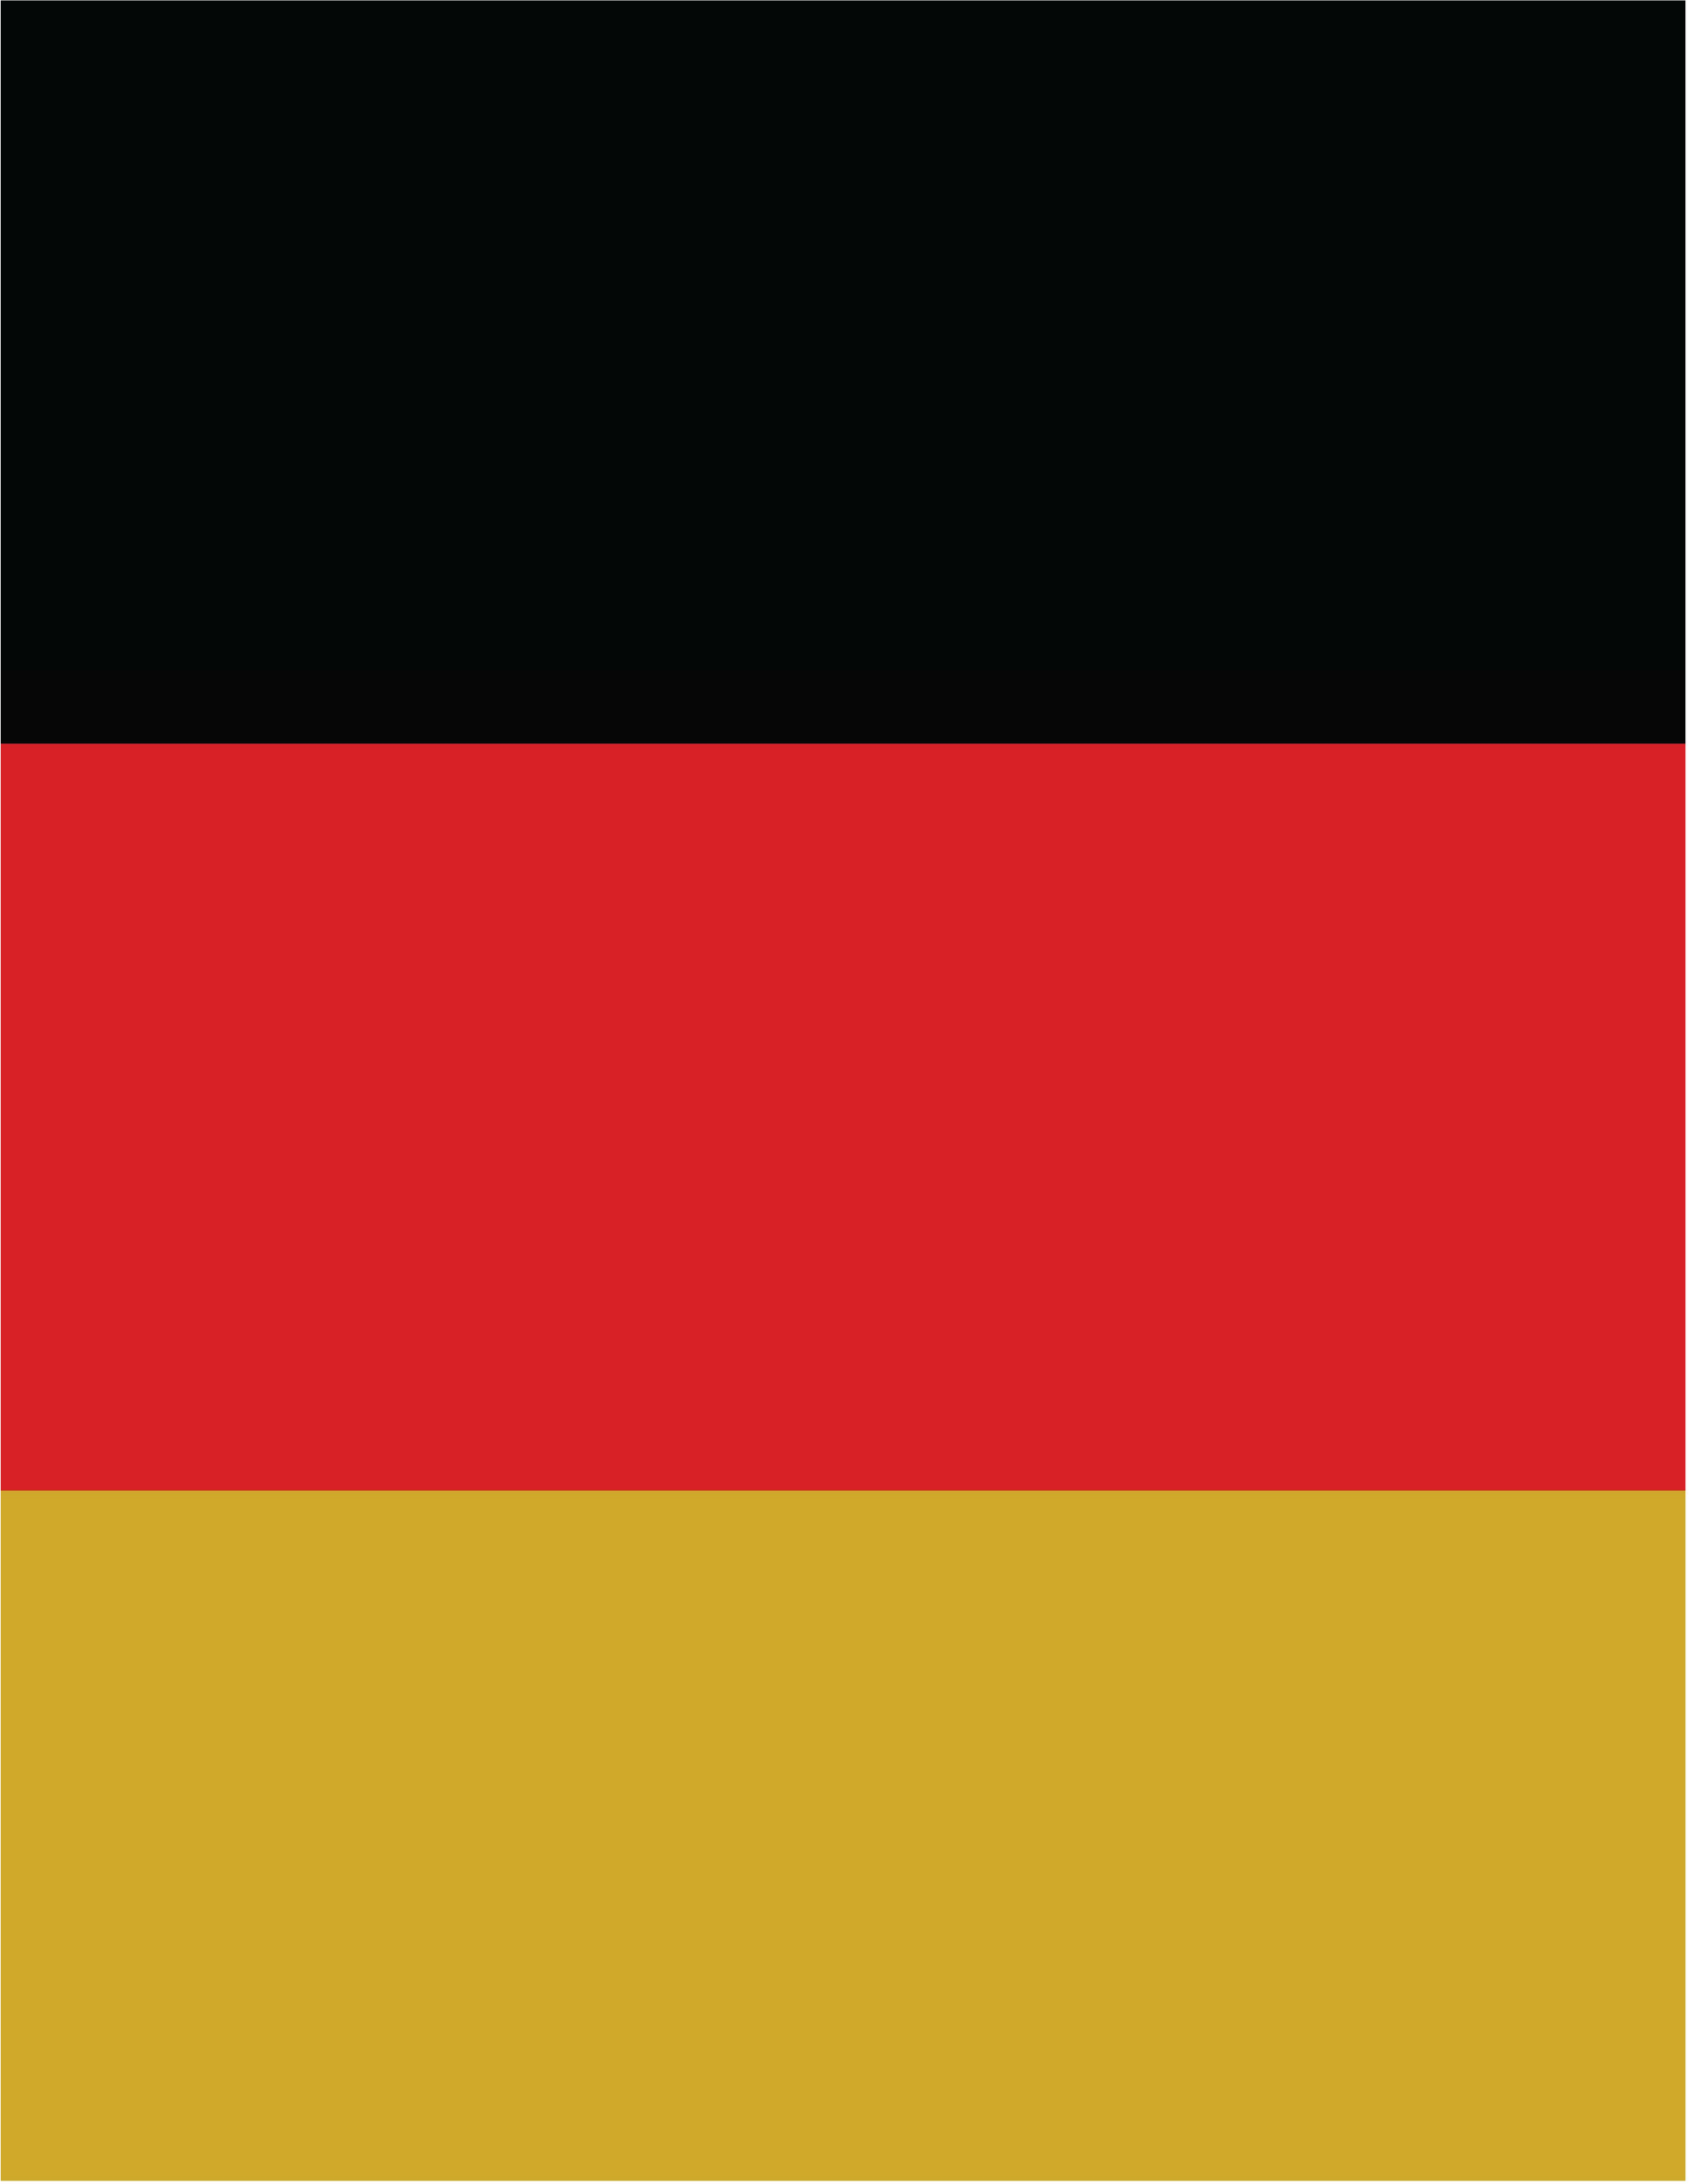 German Country Flag - Vertical by Kat Surth